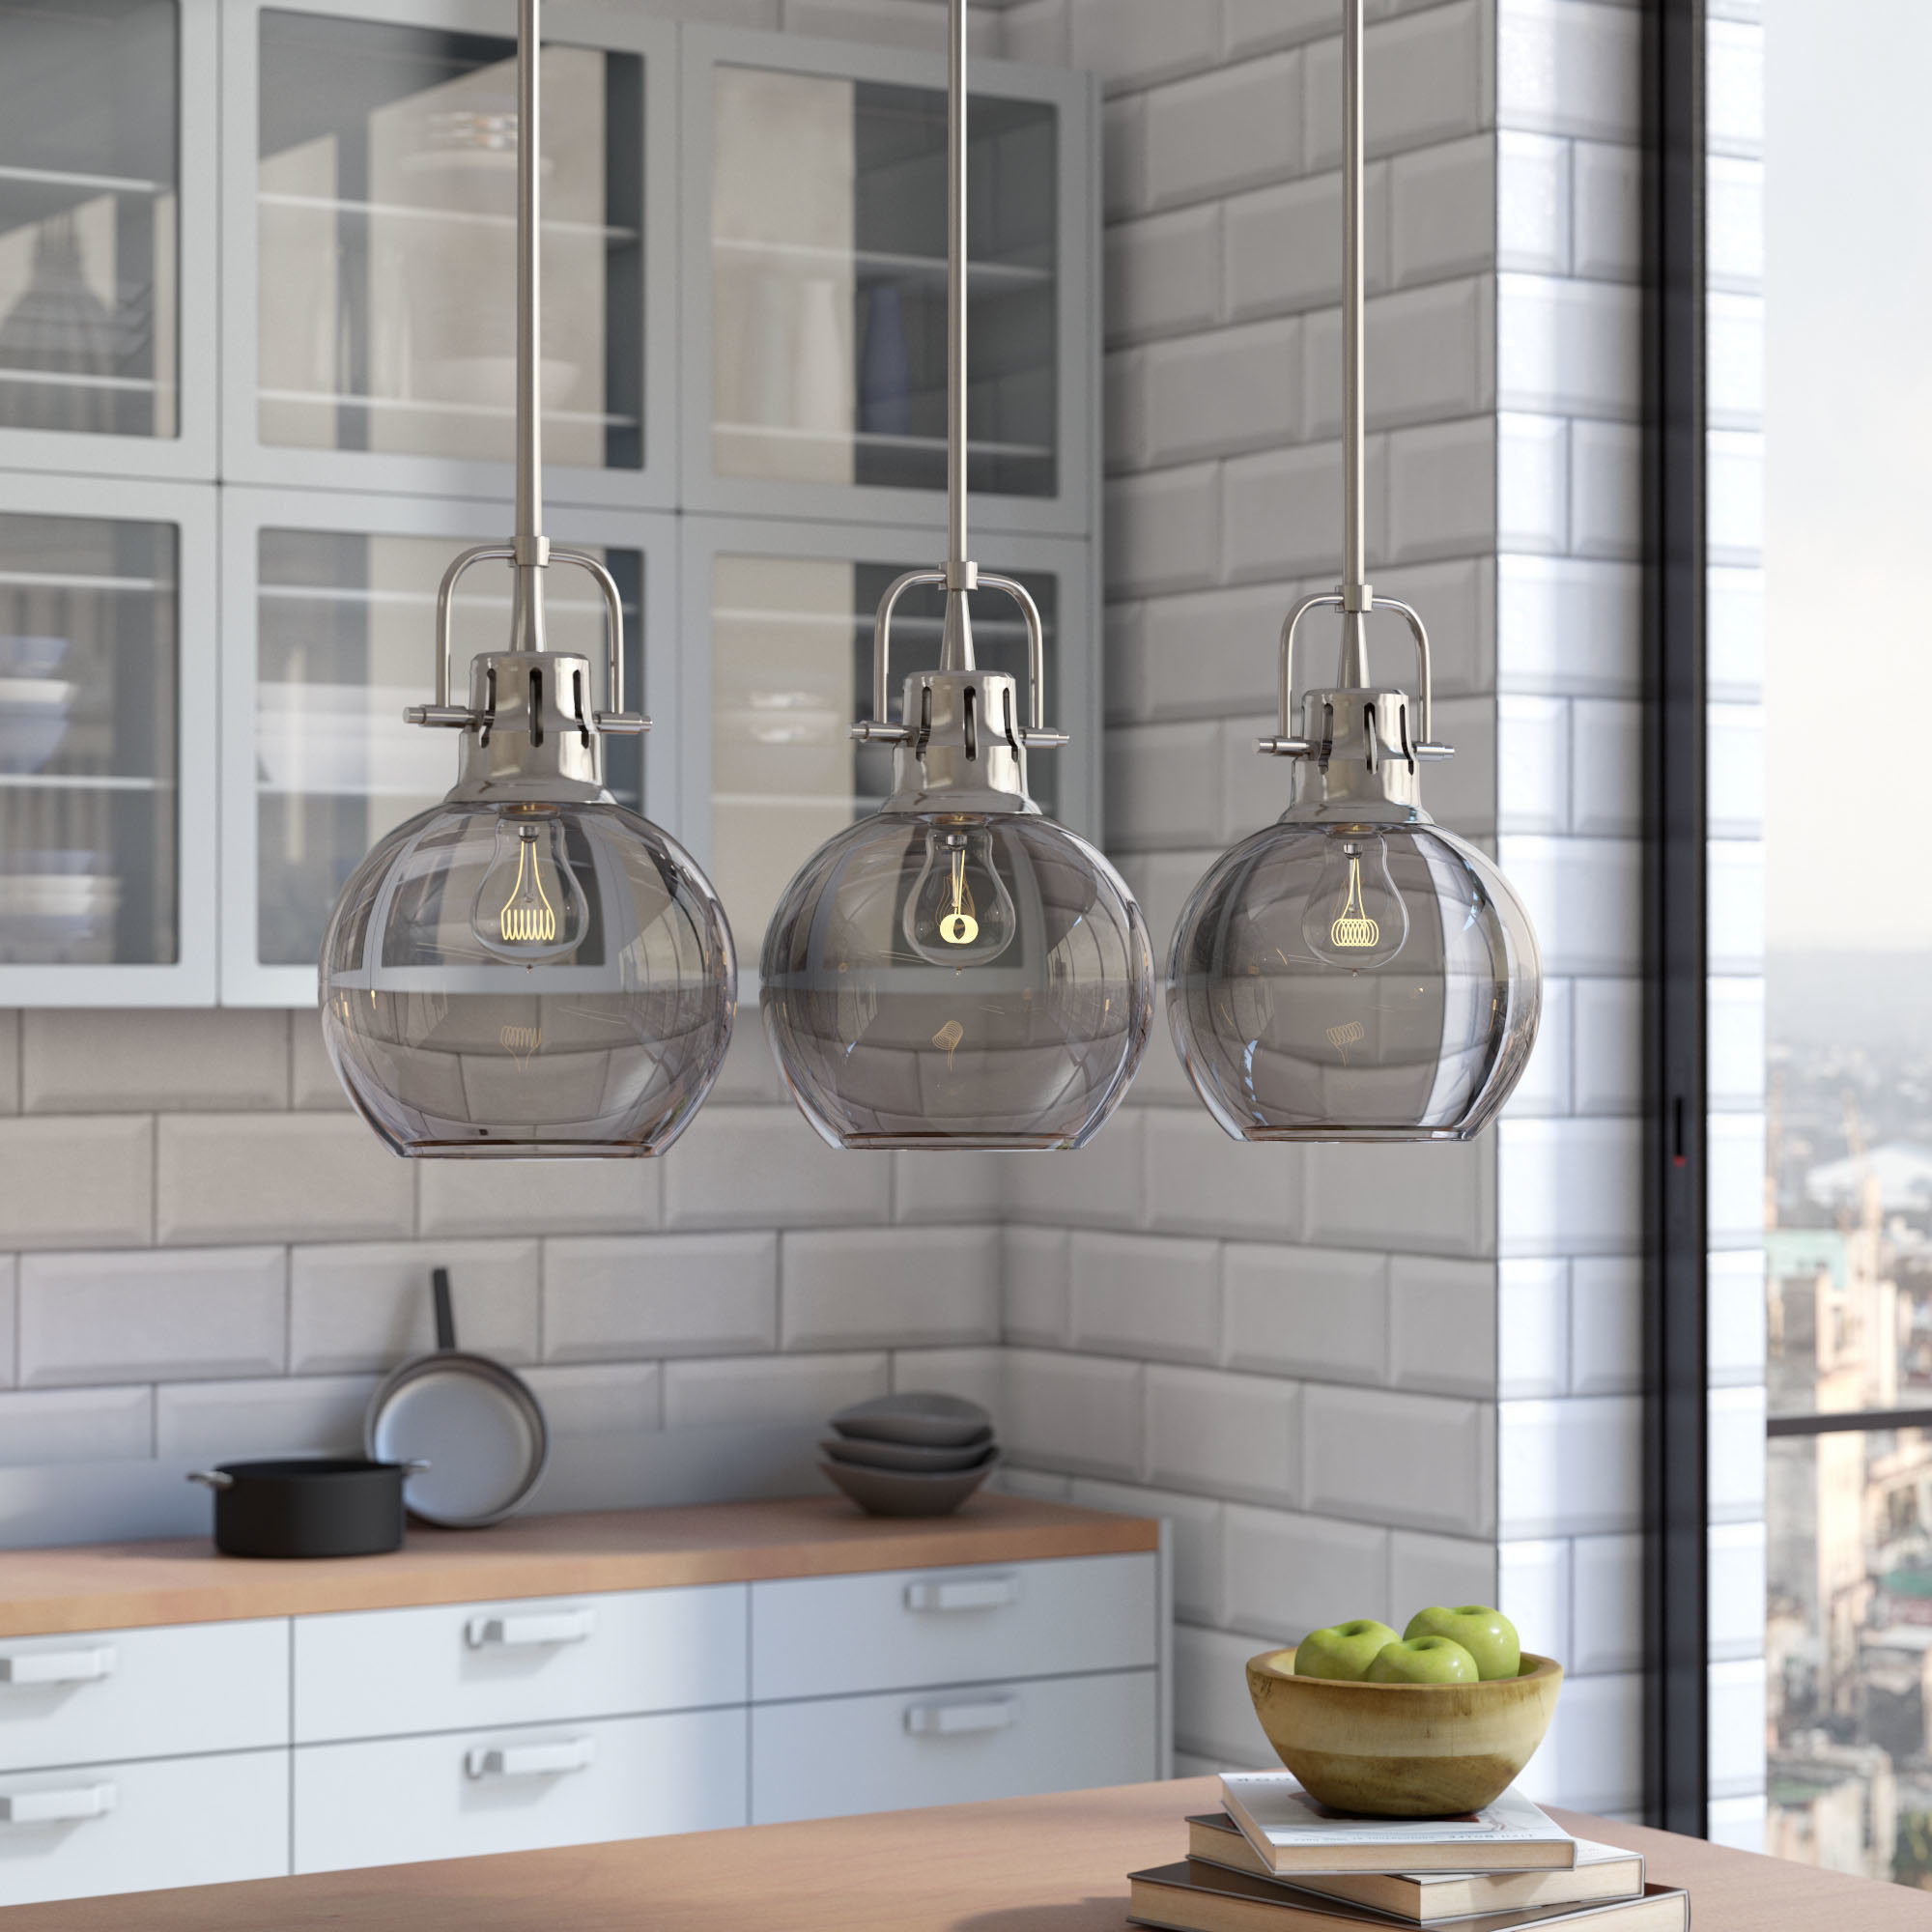 Fredela 3 Light Kitchen Island Pendants Inside Famous 3 Light Kitchen Island Pendant Lighting You'll Love In 2019 (Gallery 14 of 20)